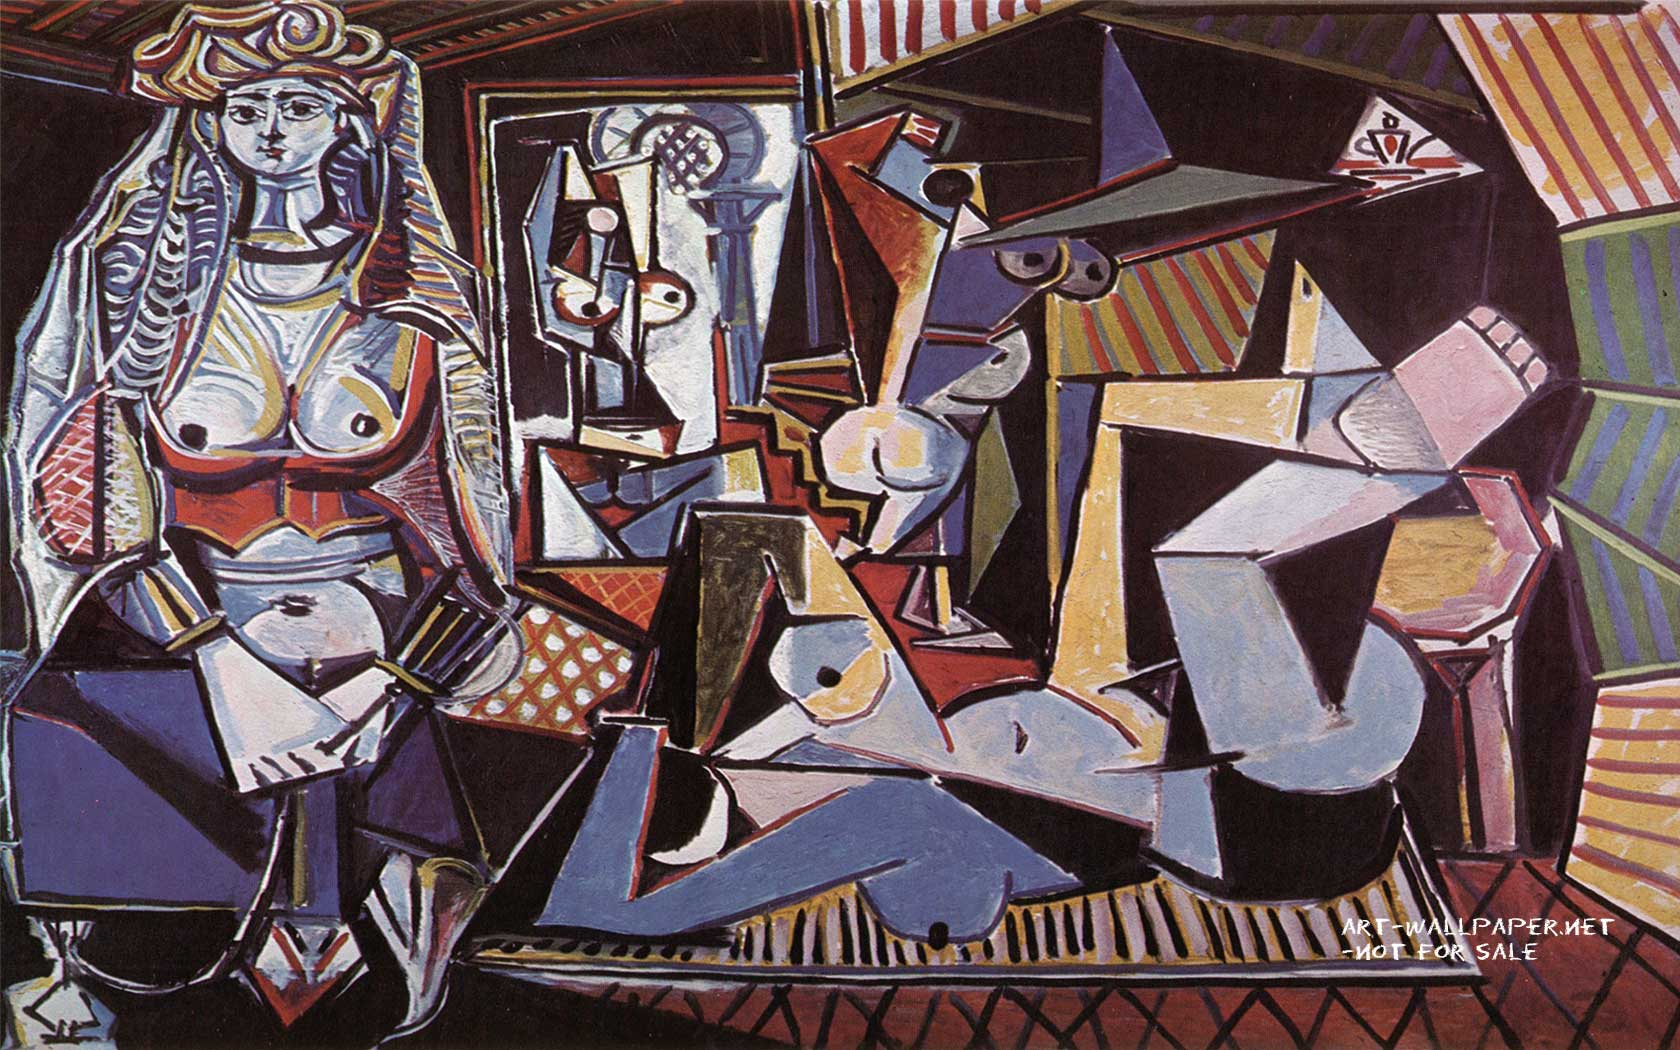 Pablo Picasso Wallpaper 7.jpg